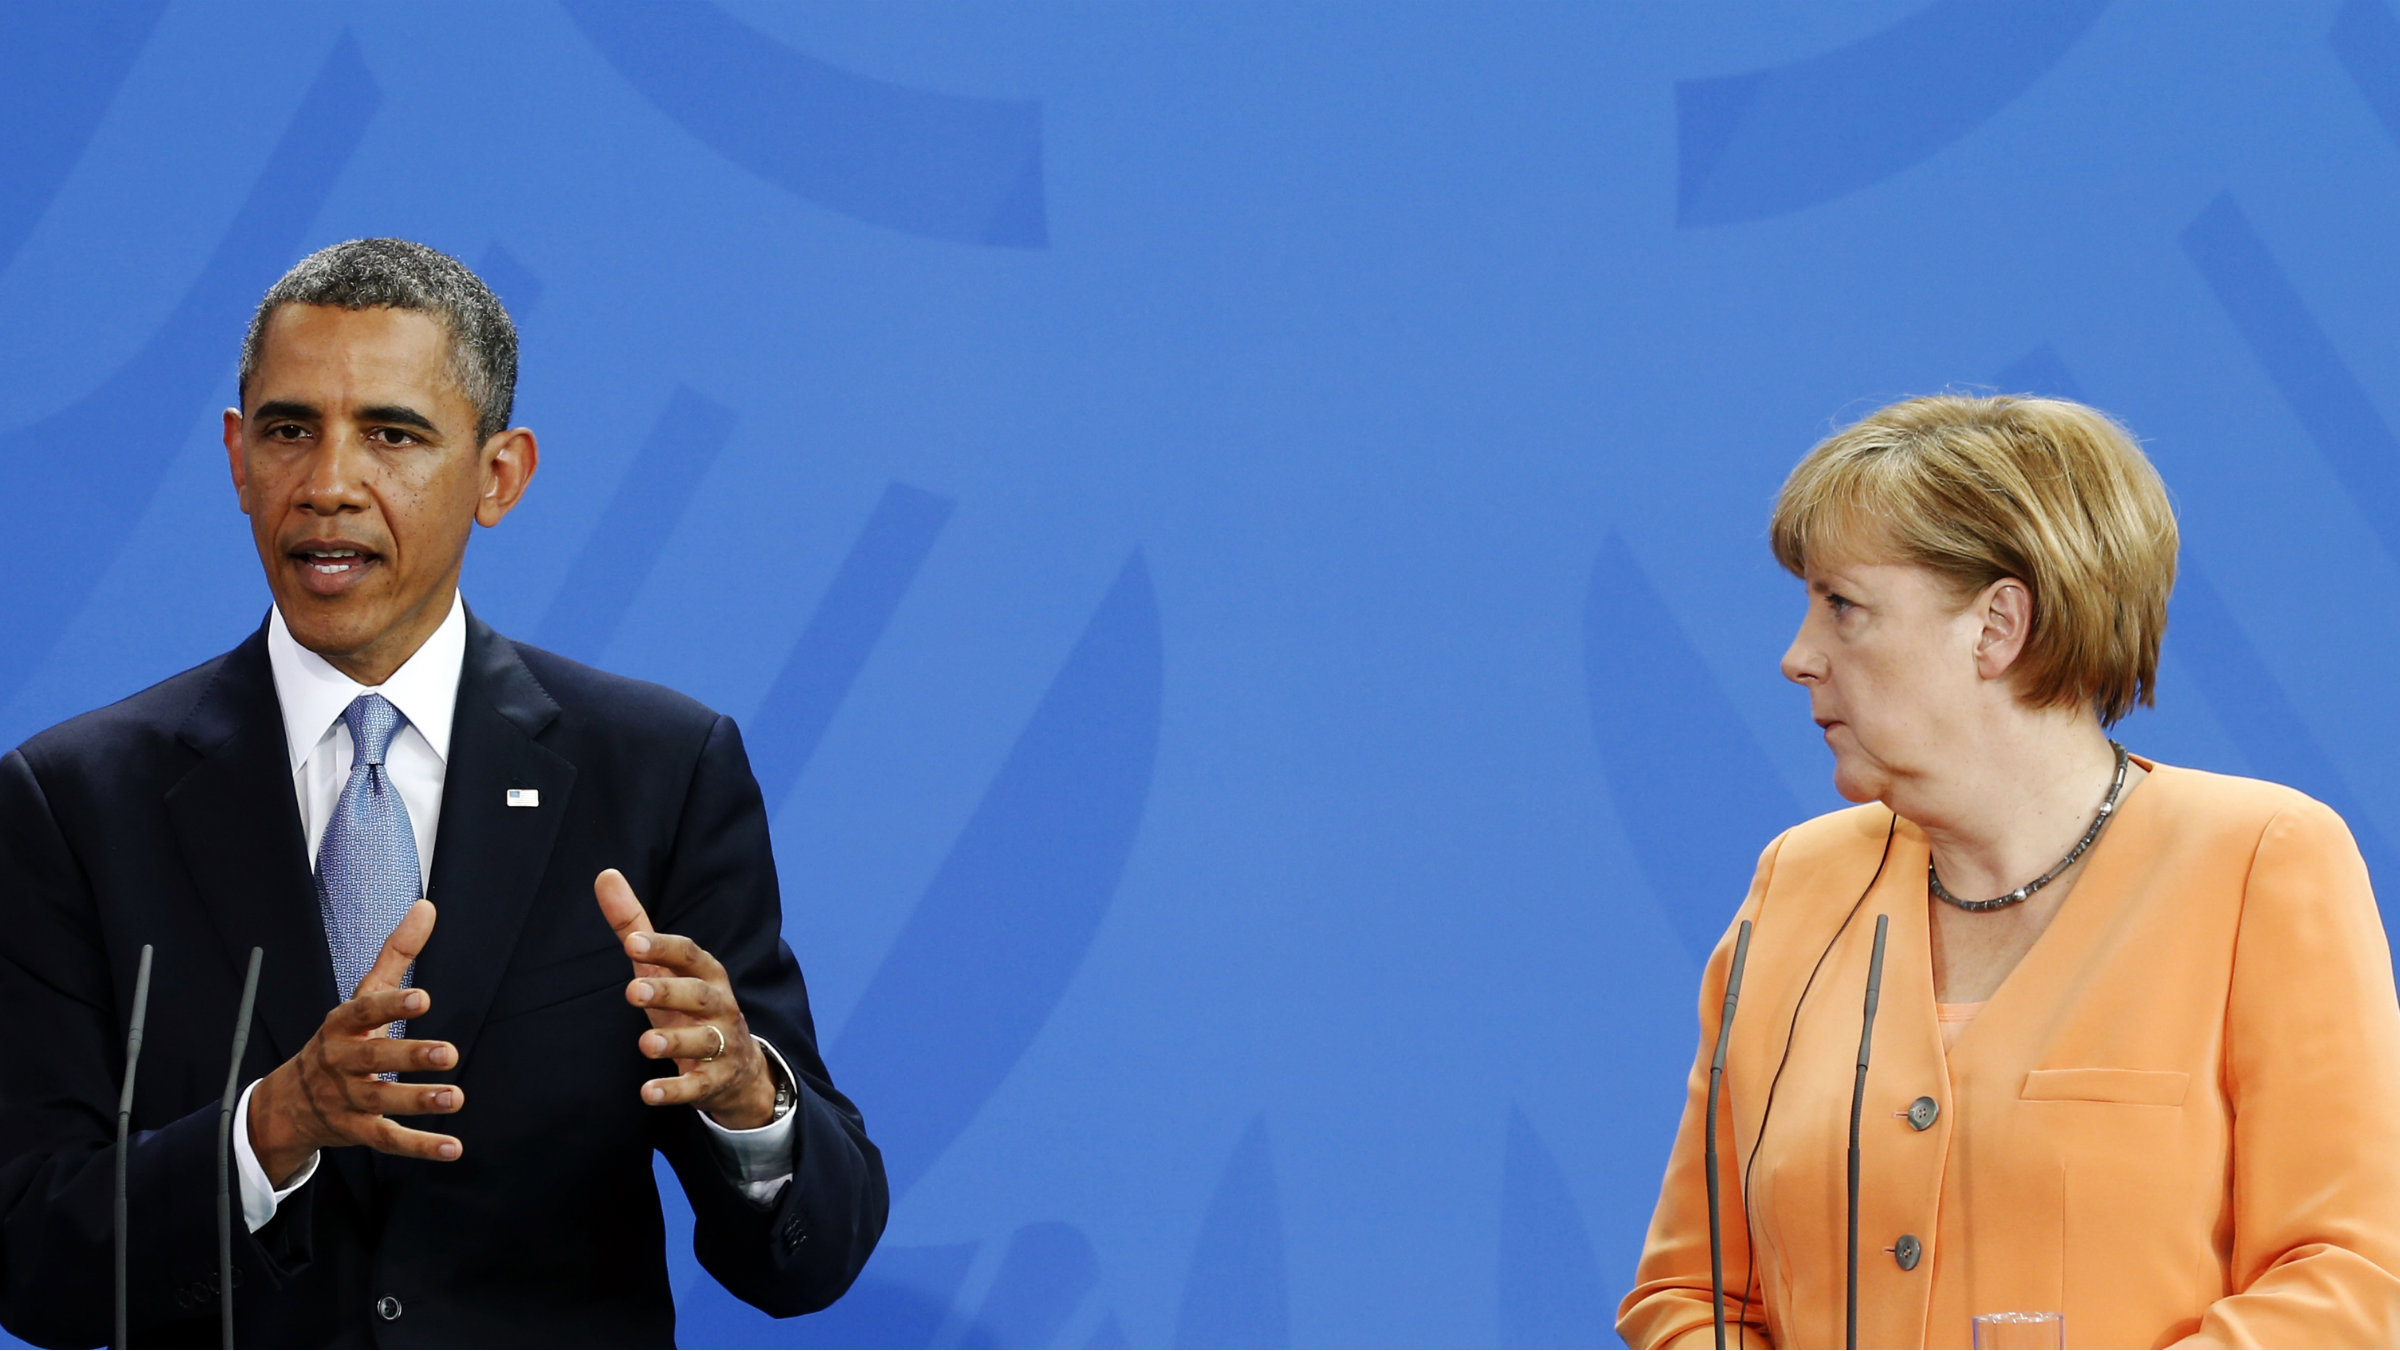 Germany is not impressed by fiscal advice from the US.